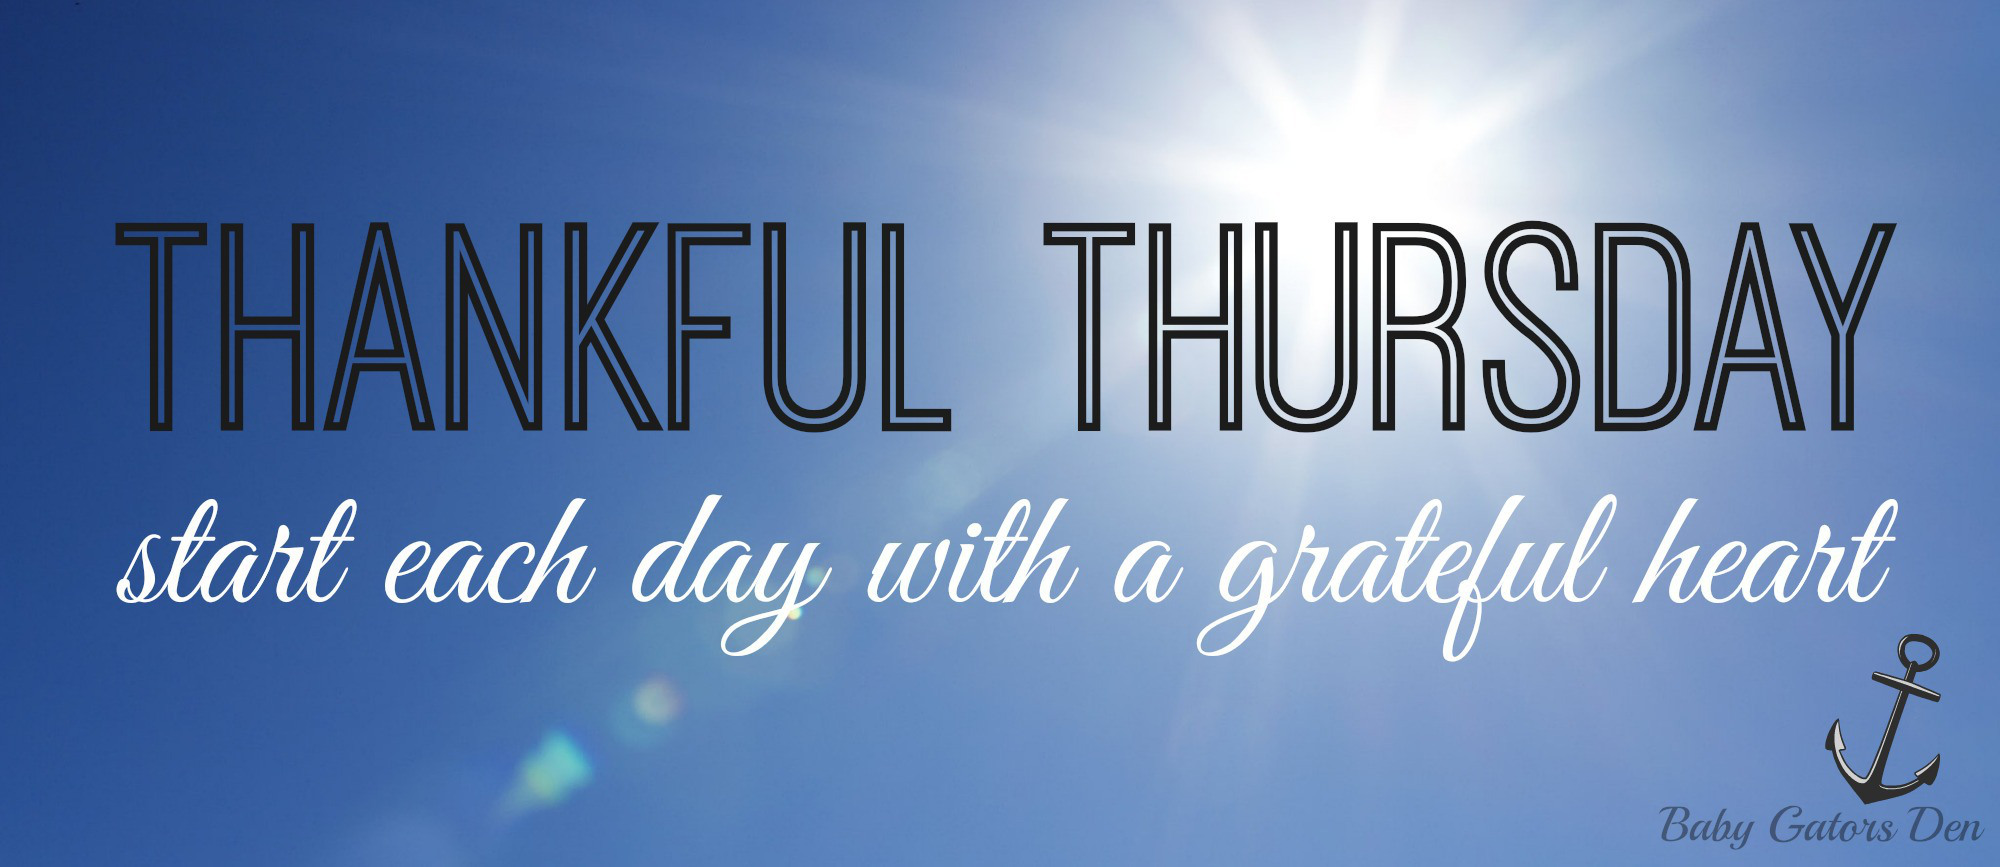 Thursday Motivational Quotes: Thankful Thursday Motivational Quotes. QuotesGram